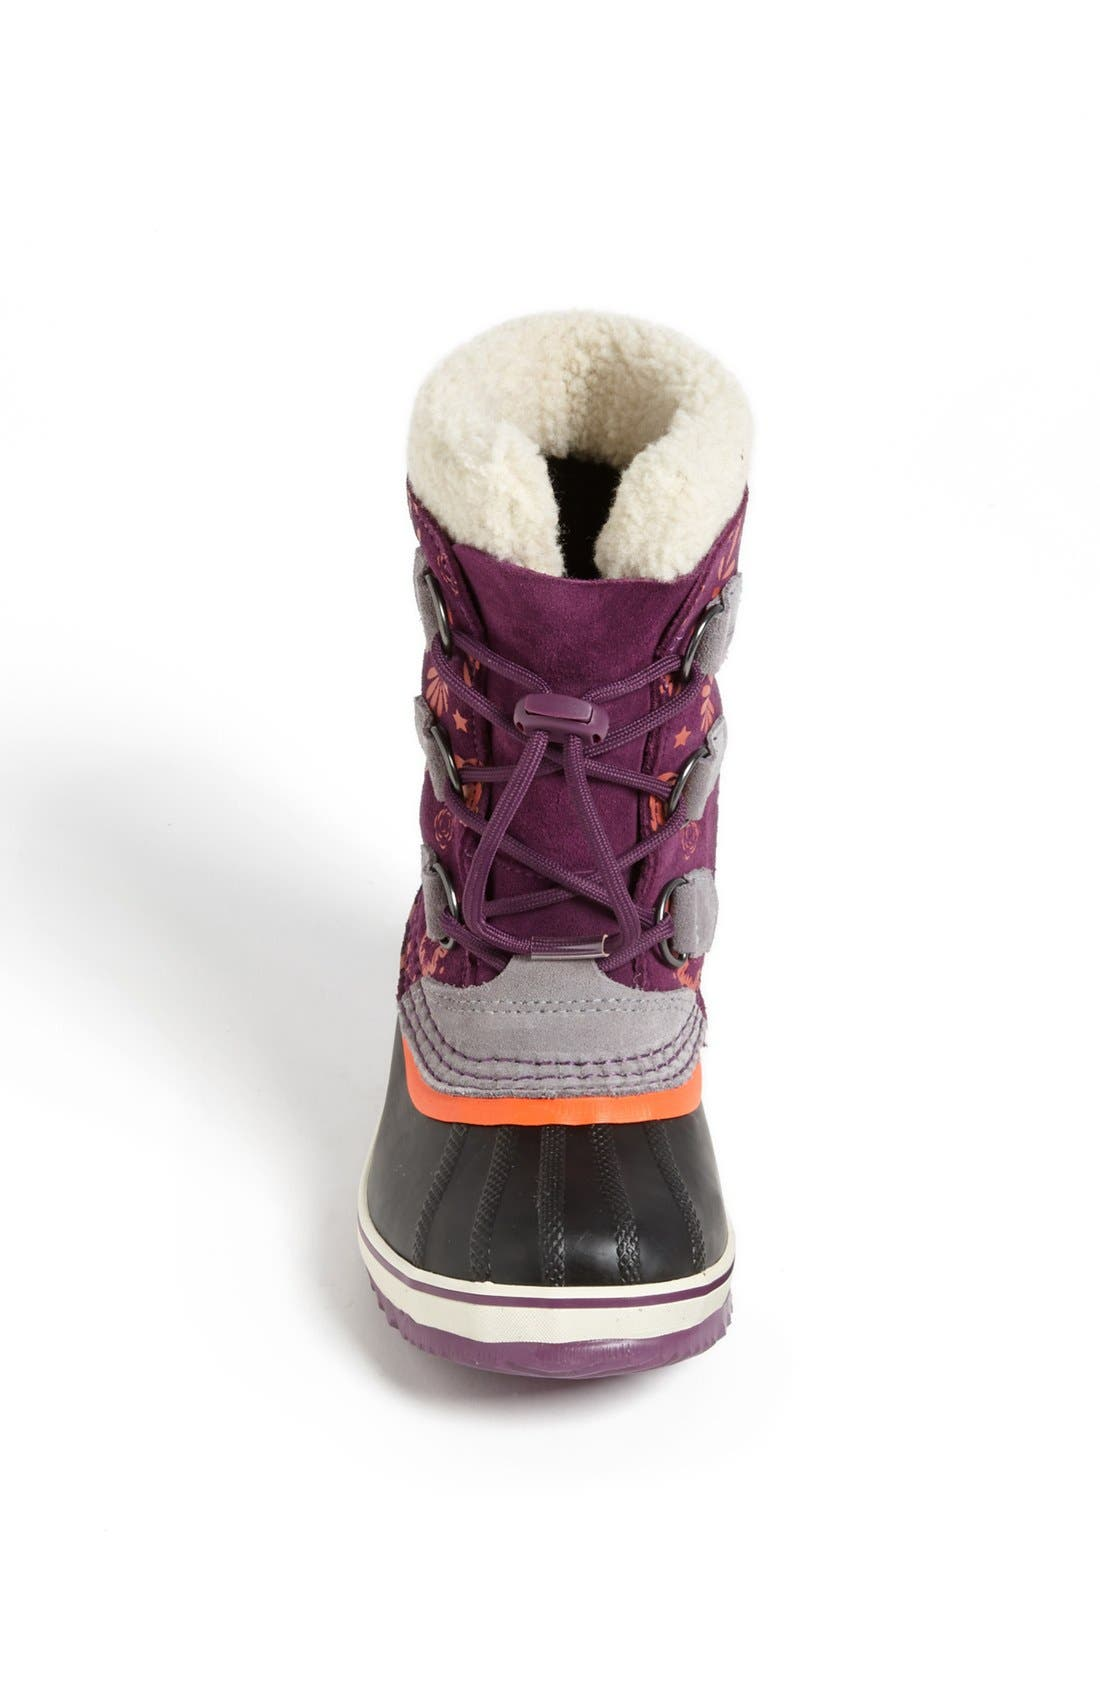 Alternate Image 3  - SOREL '1964 PAC™ - Graphic' Snow Boot (Toddler, Little Kid & Big Kid)